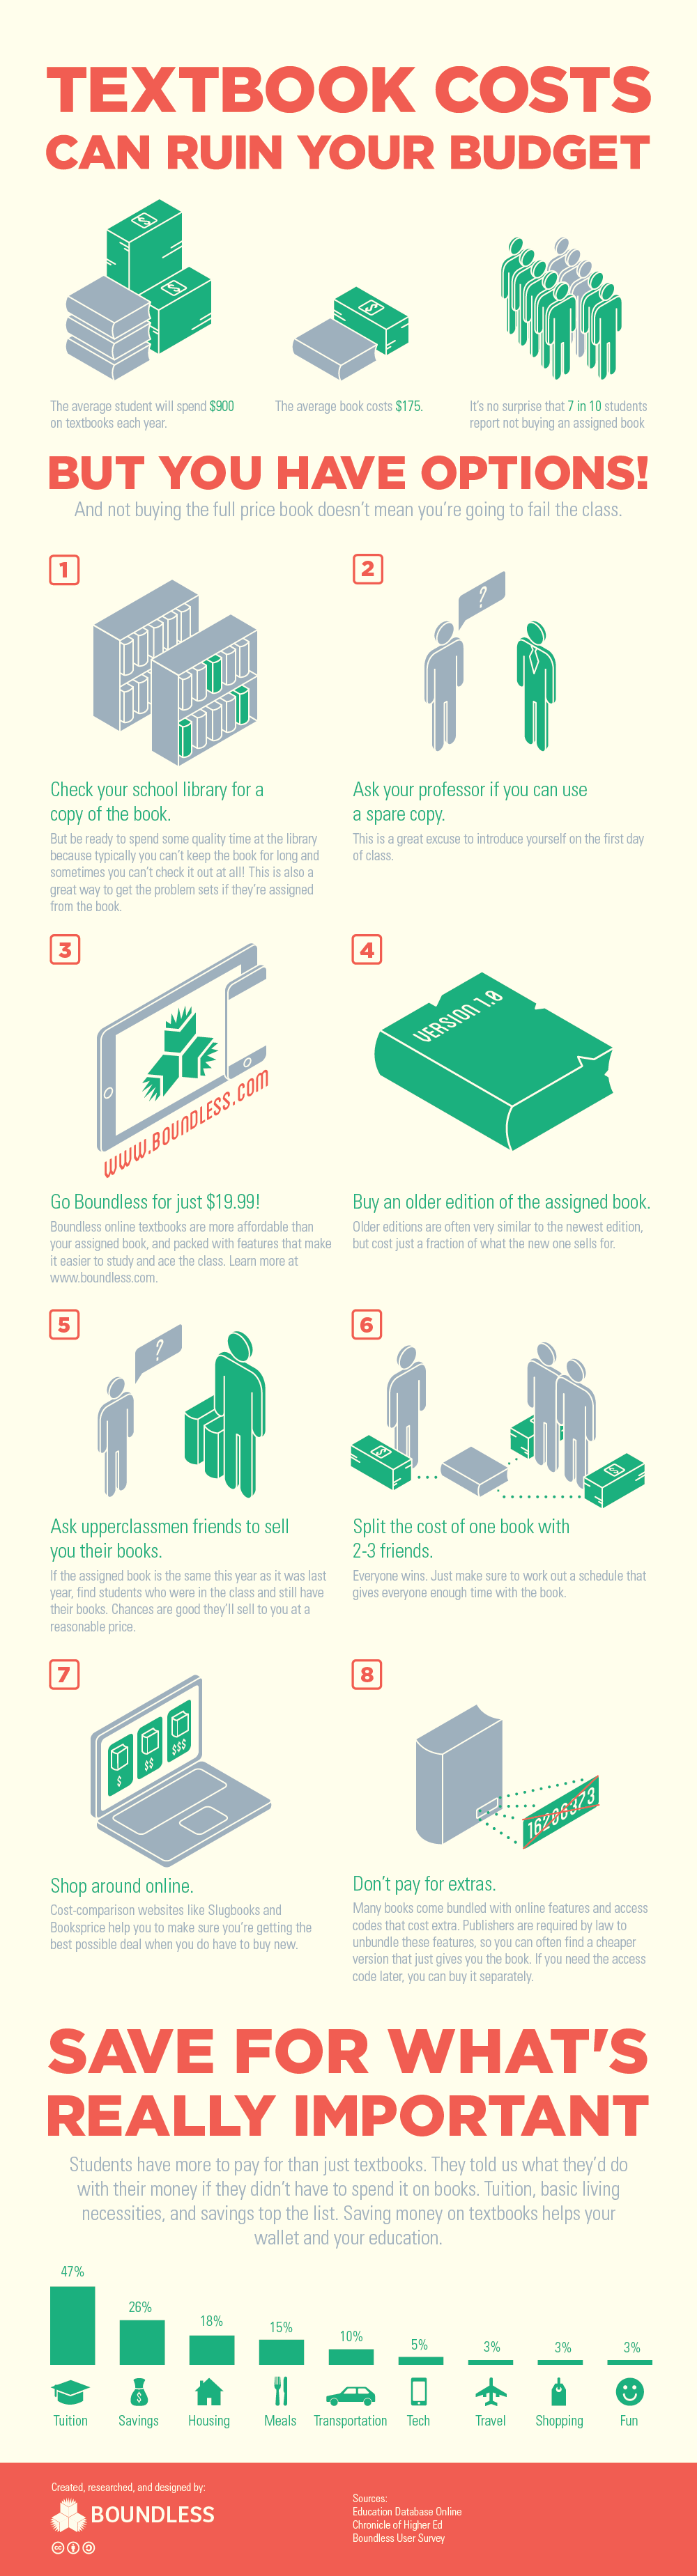 save money on textbooks infographic